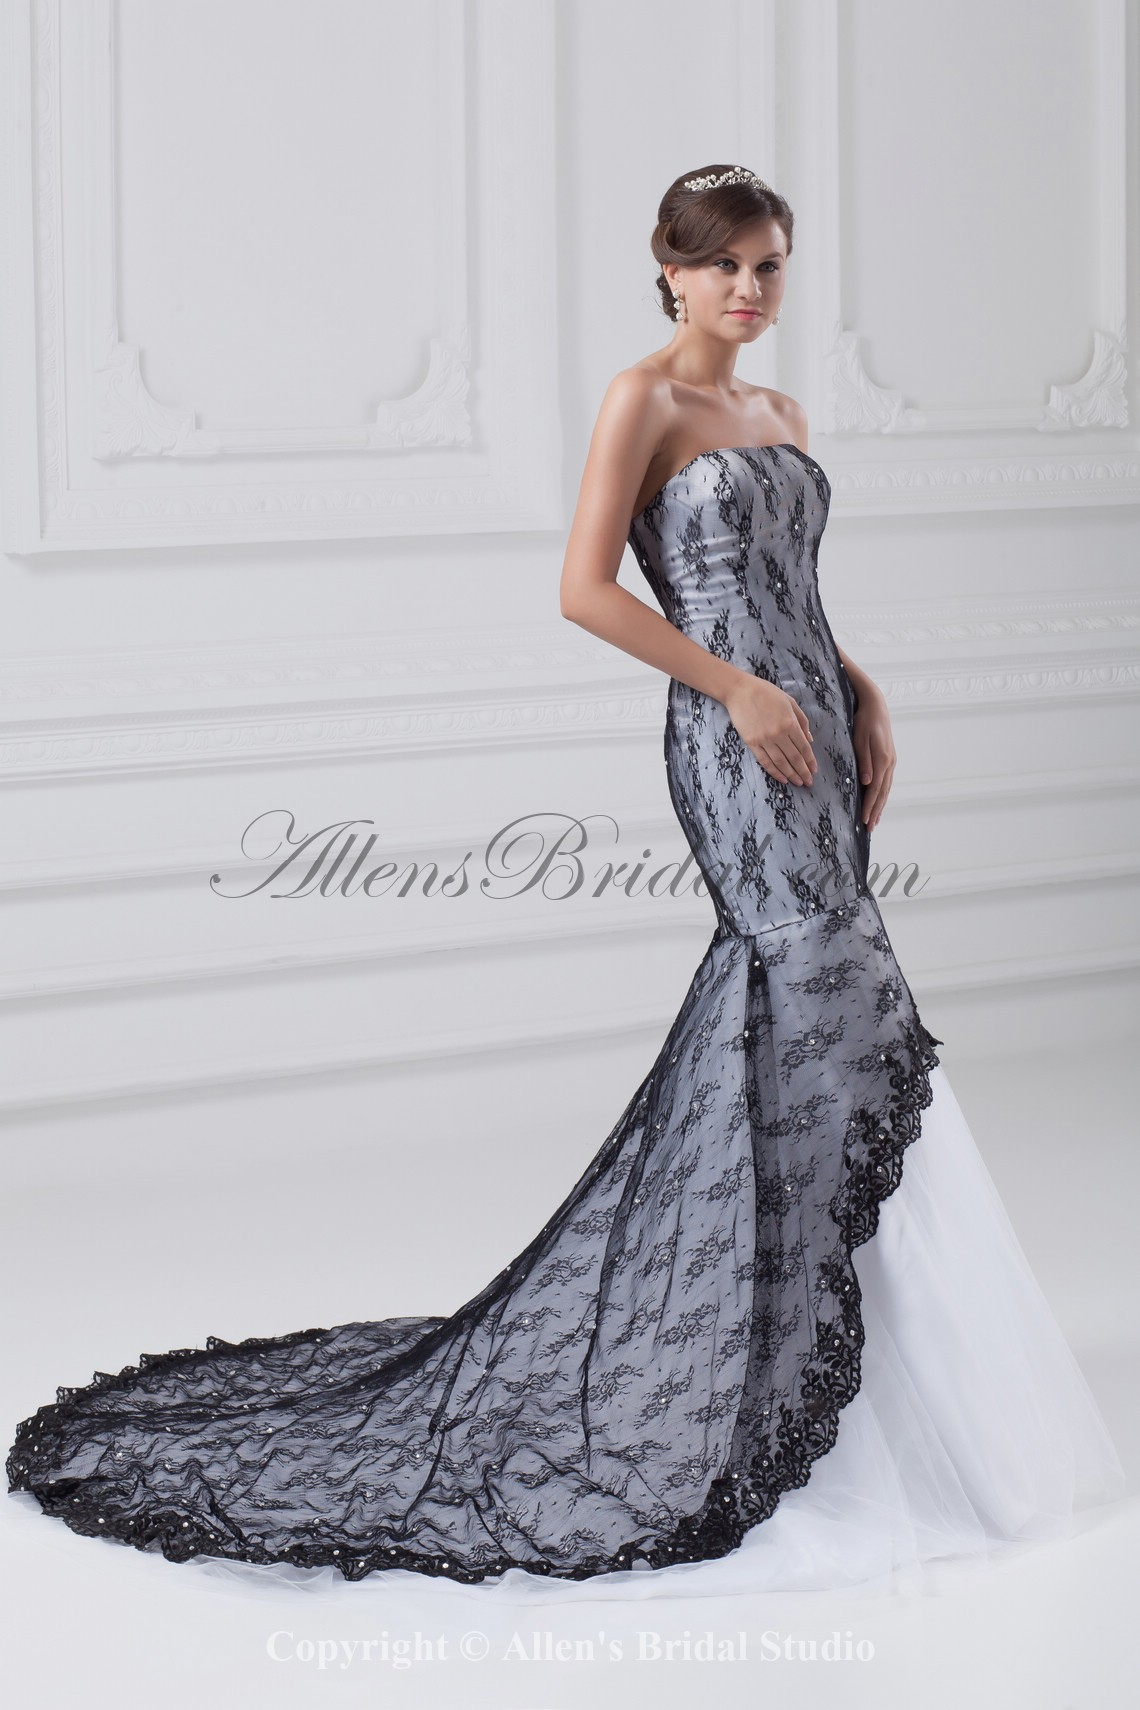 /883-7080/satin-and-lace-strapless-neckline-floor-length-mermaid-wedding-dress.jpg